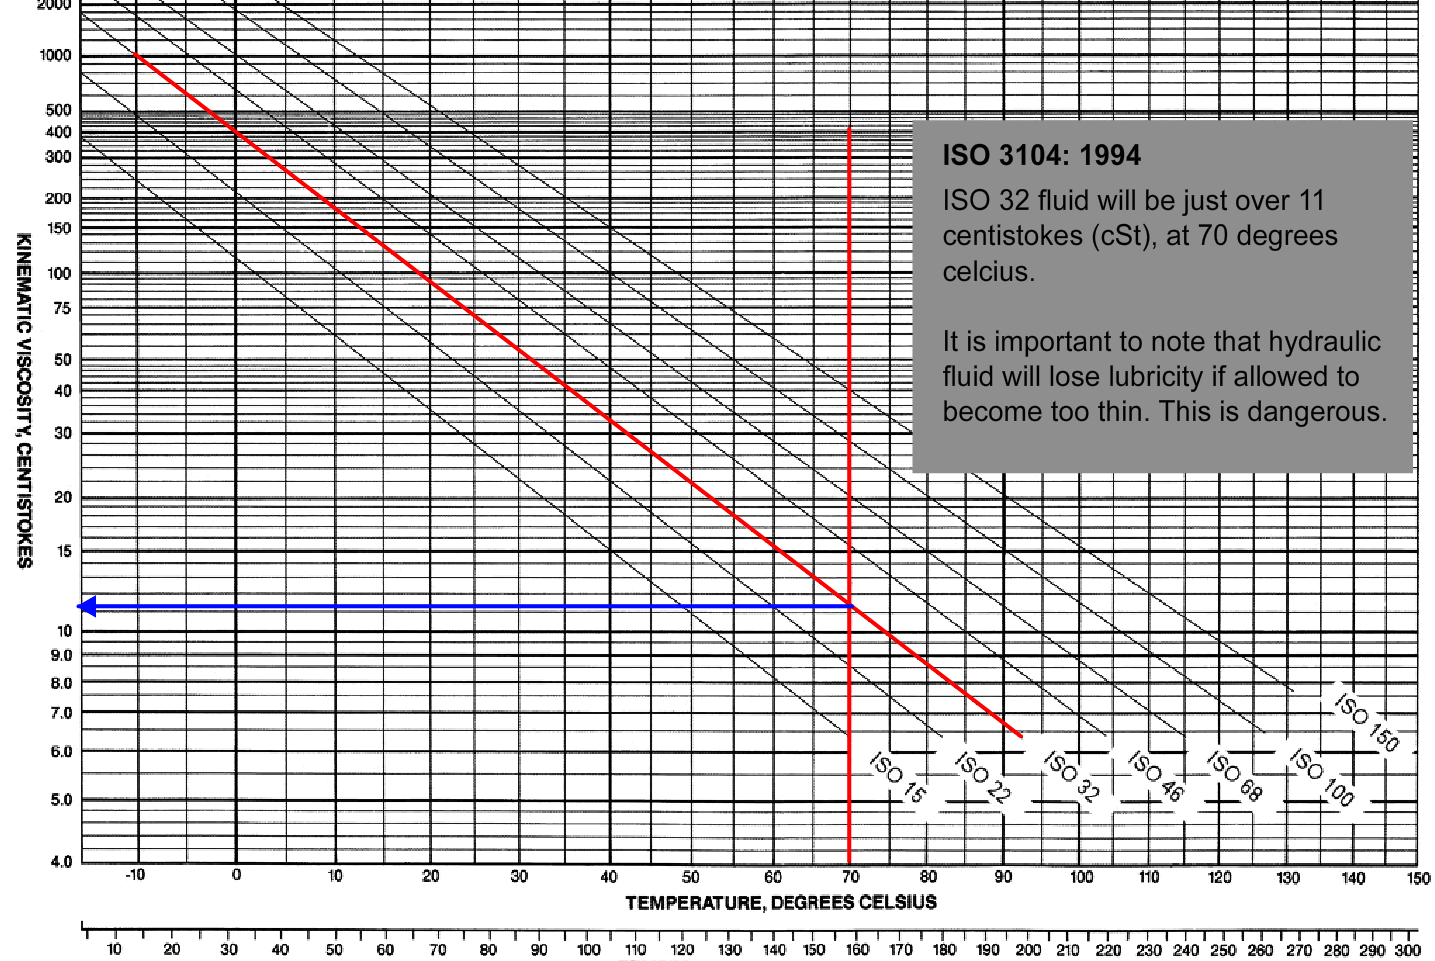 Hydraulic Filters - Pressure Drop Chart Calculation - ISO 3104 70 degrees (hot)